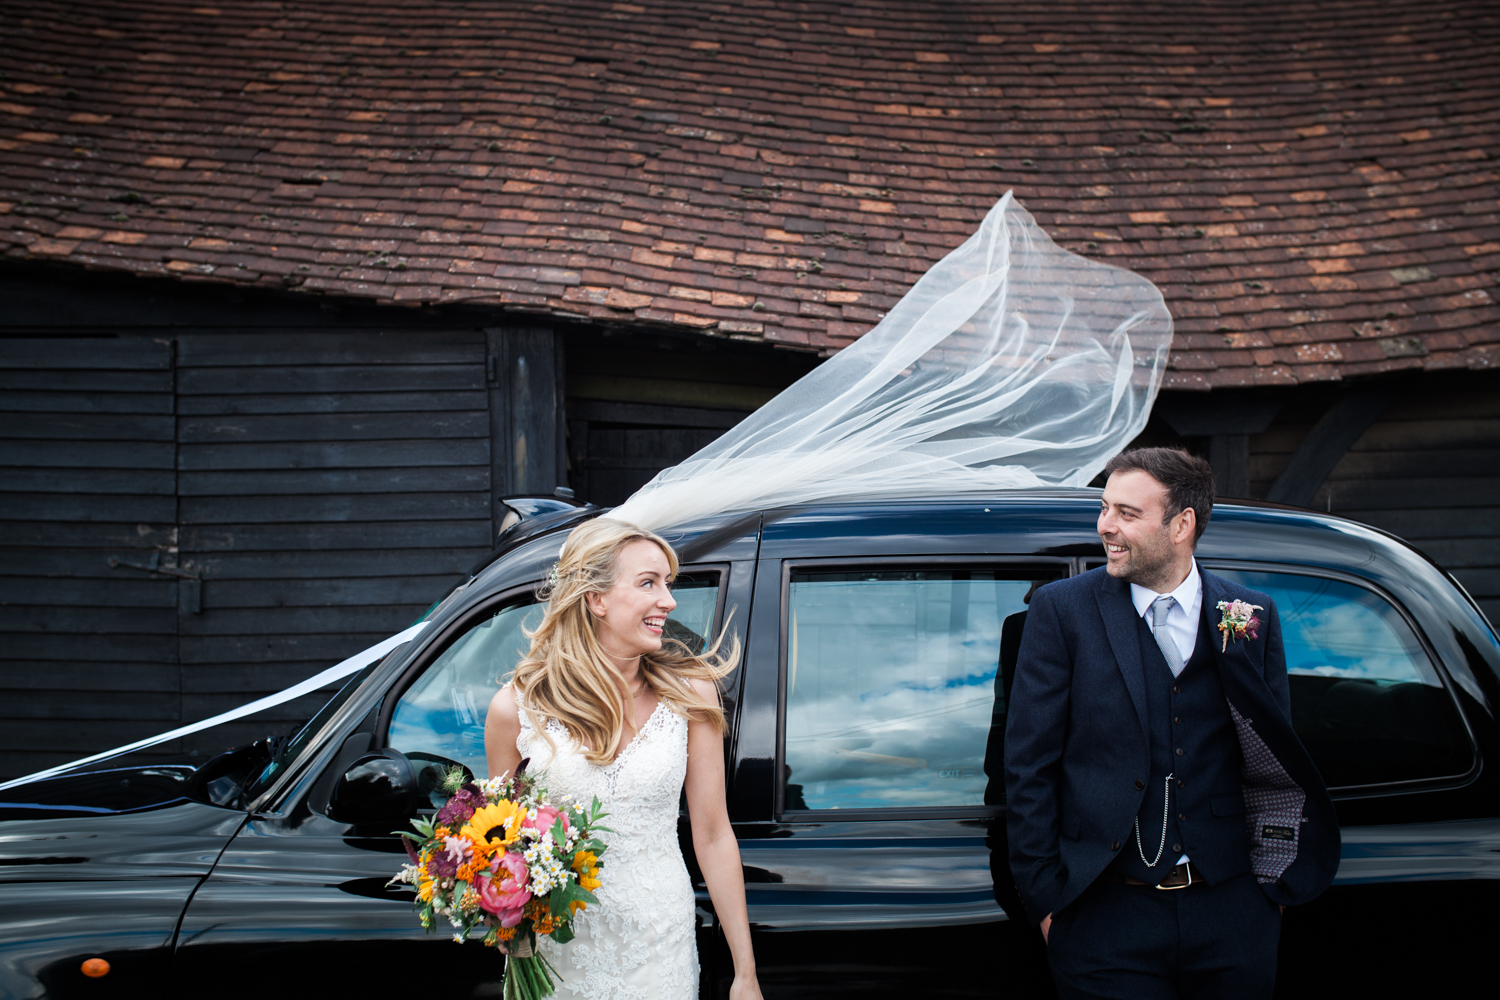 Bride and Groom - Black Cab wedding car, Buckinghamshire